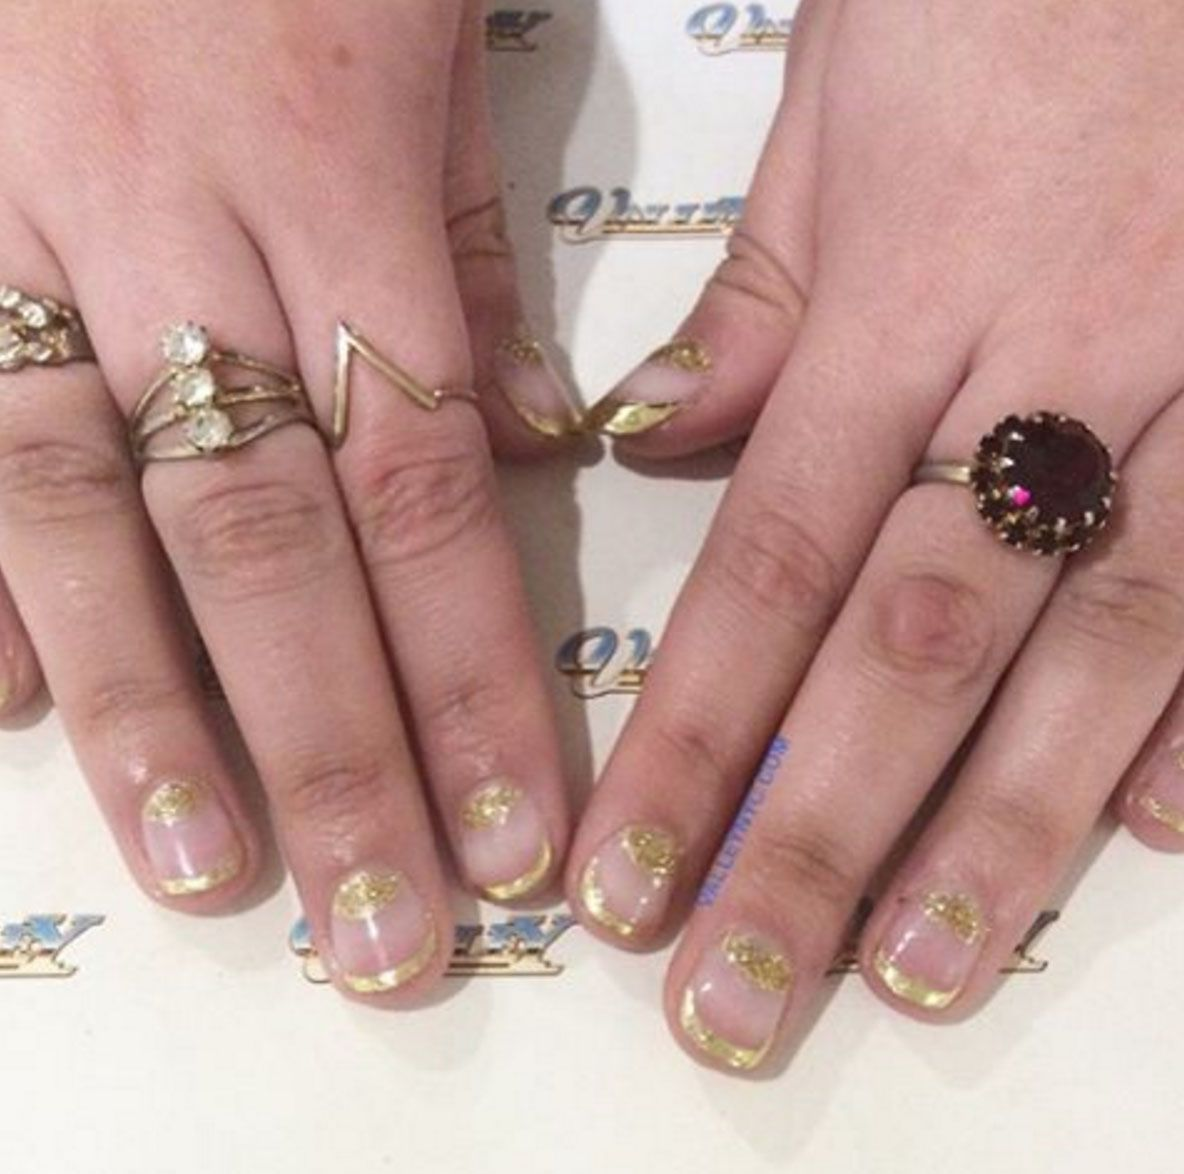 15 Best New Years Eve Nail Art Ideas - Nail Designs for a New Years ...